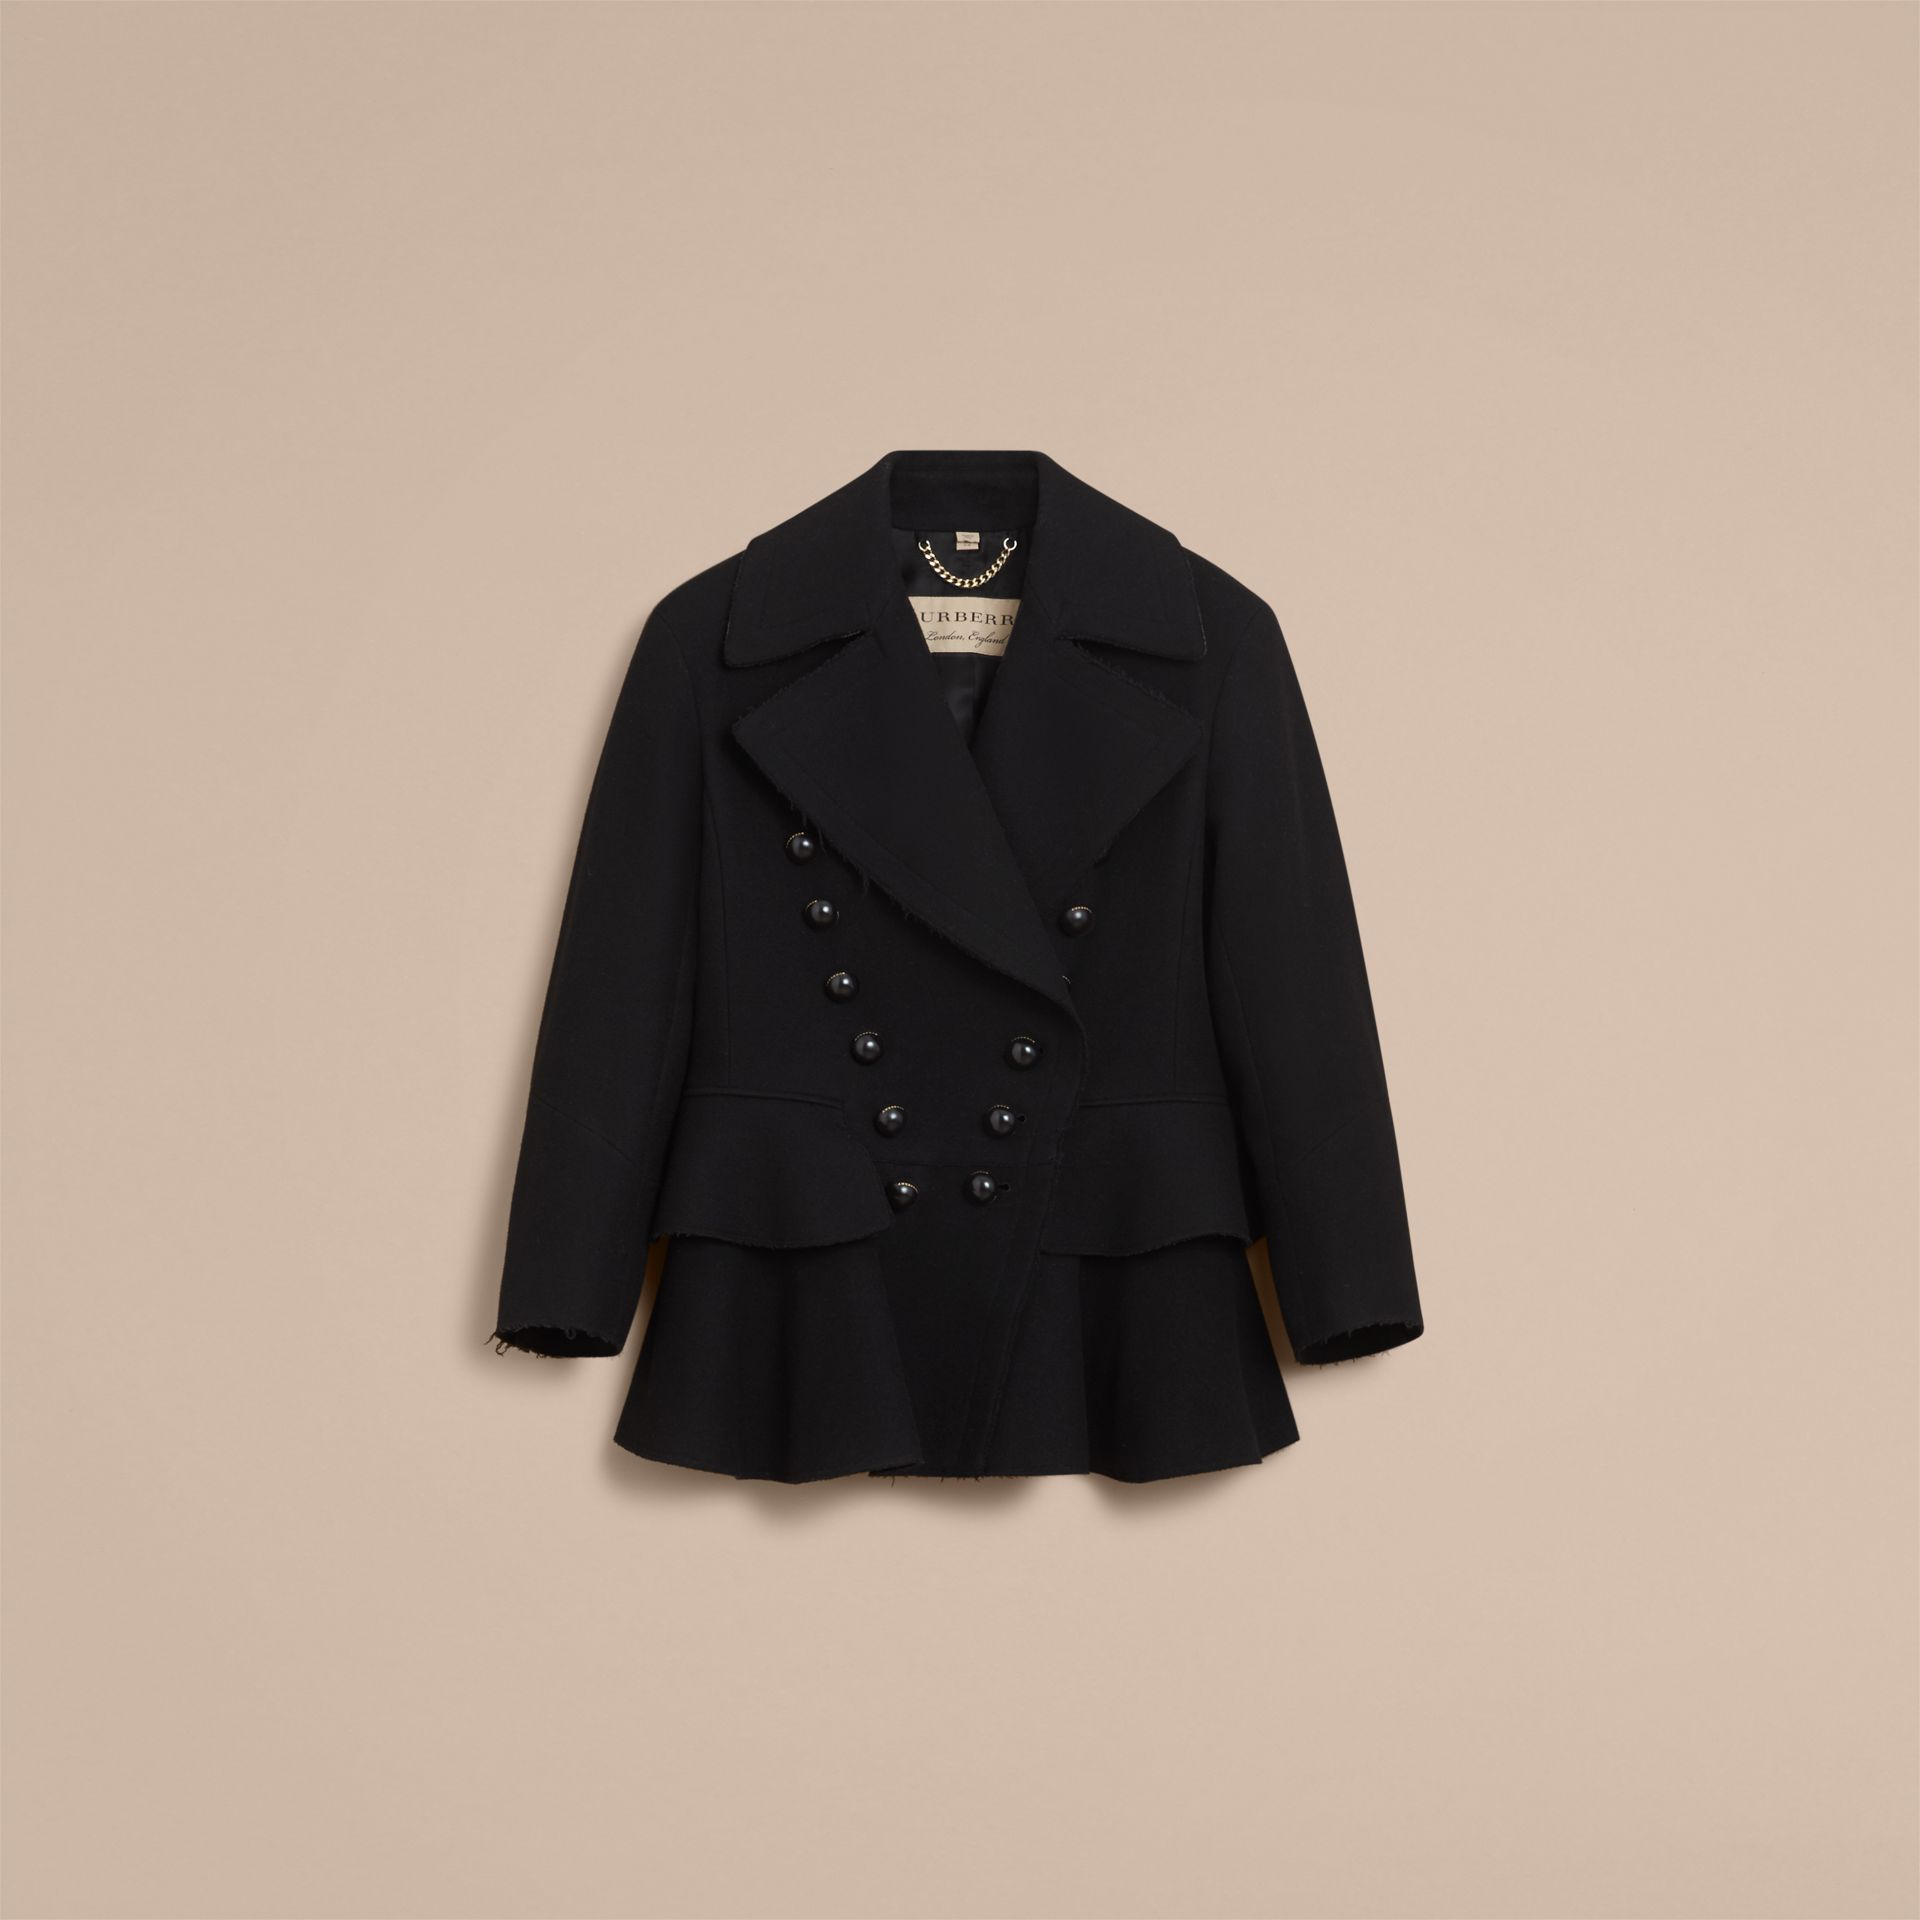 Wool Blend Peplum Jacket in Black - Women | Burberry - gallery image 3